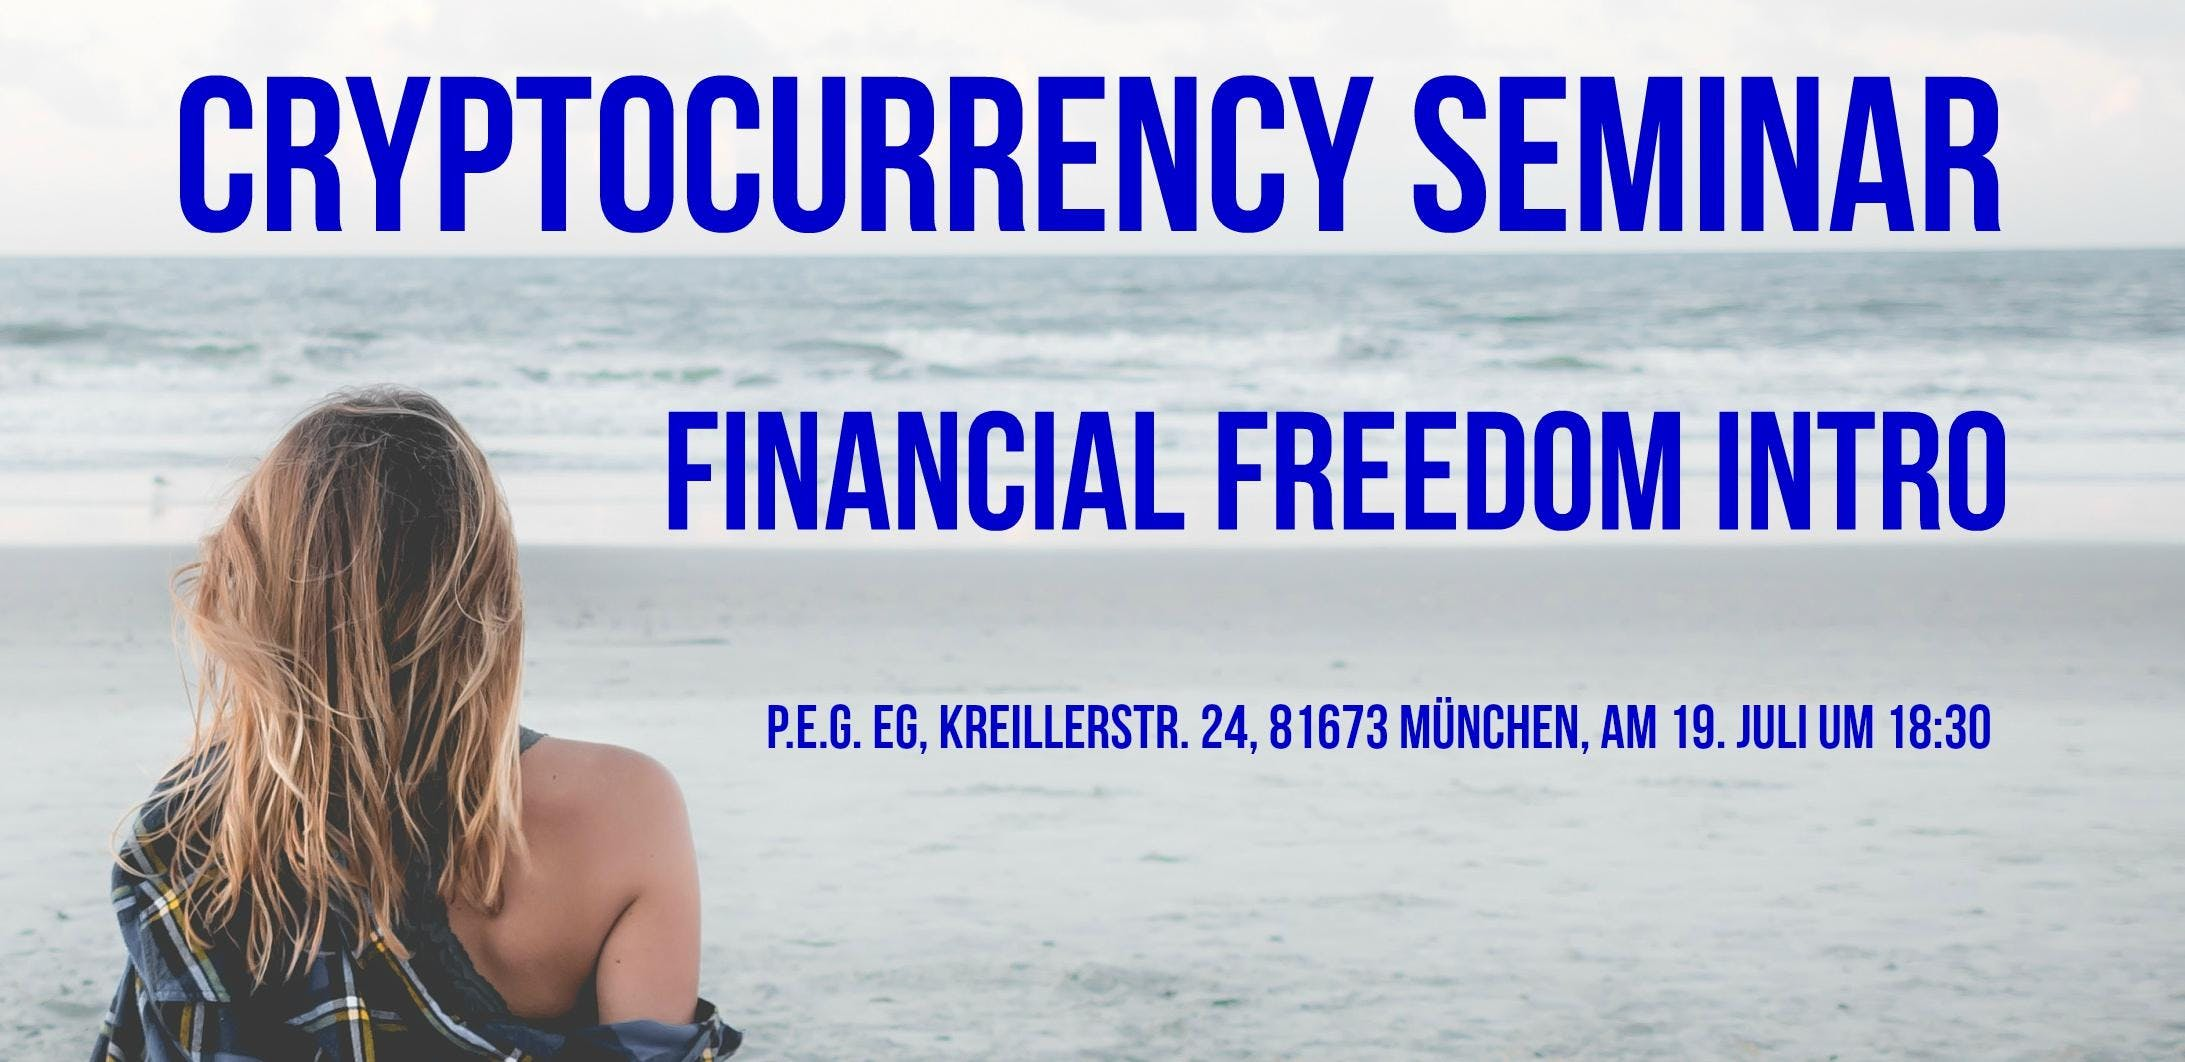 Cryptocurrency Seminar - Financial Freedom In